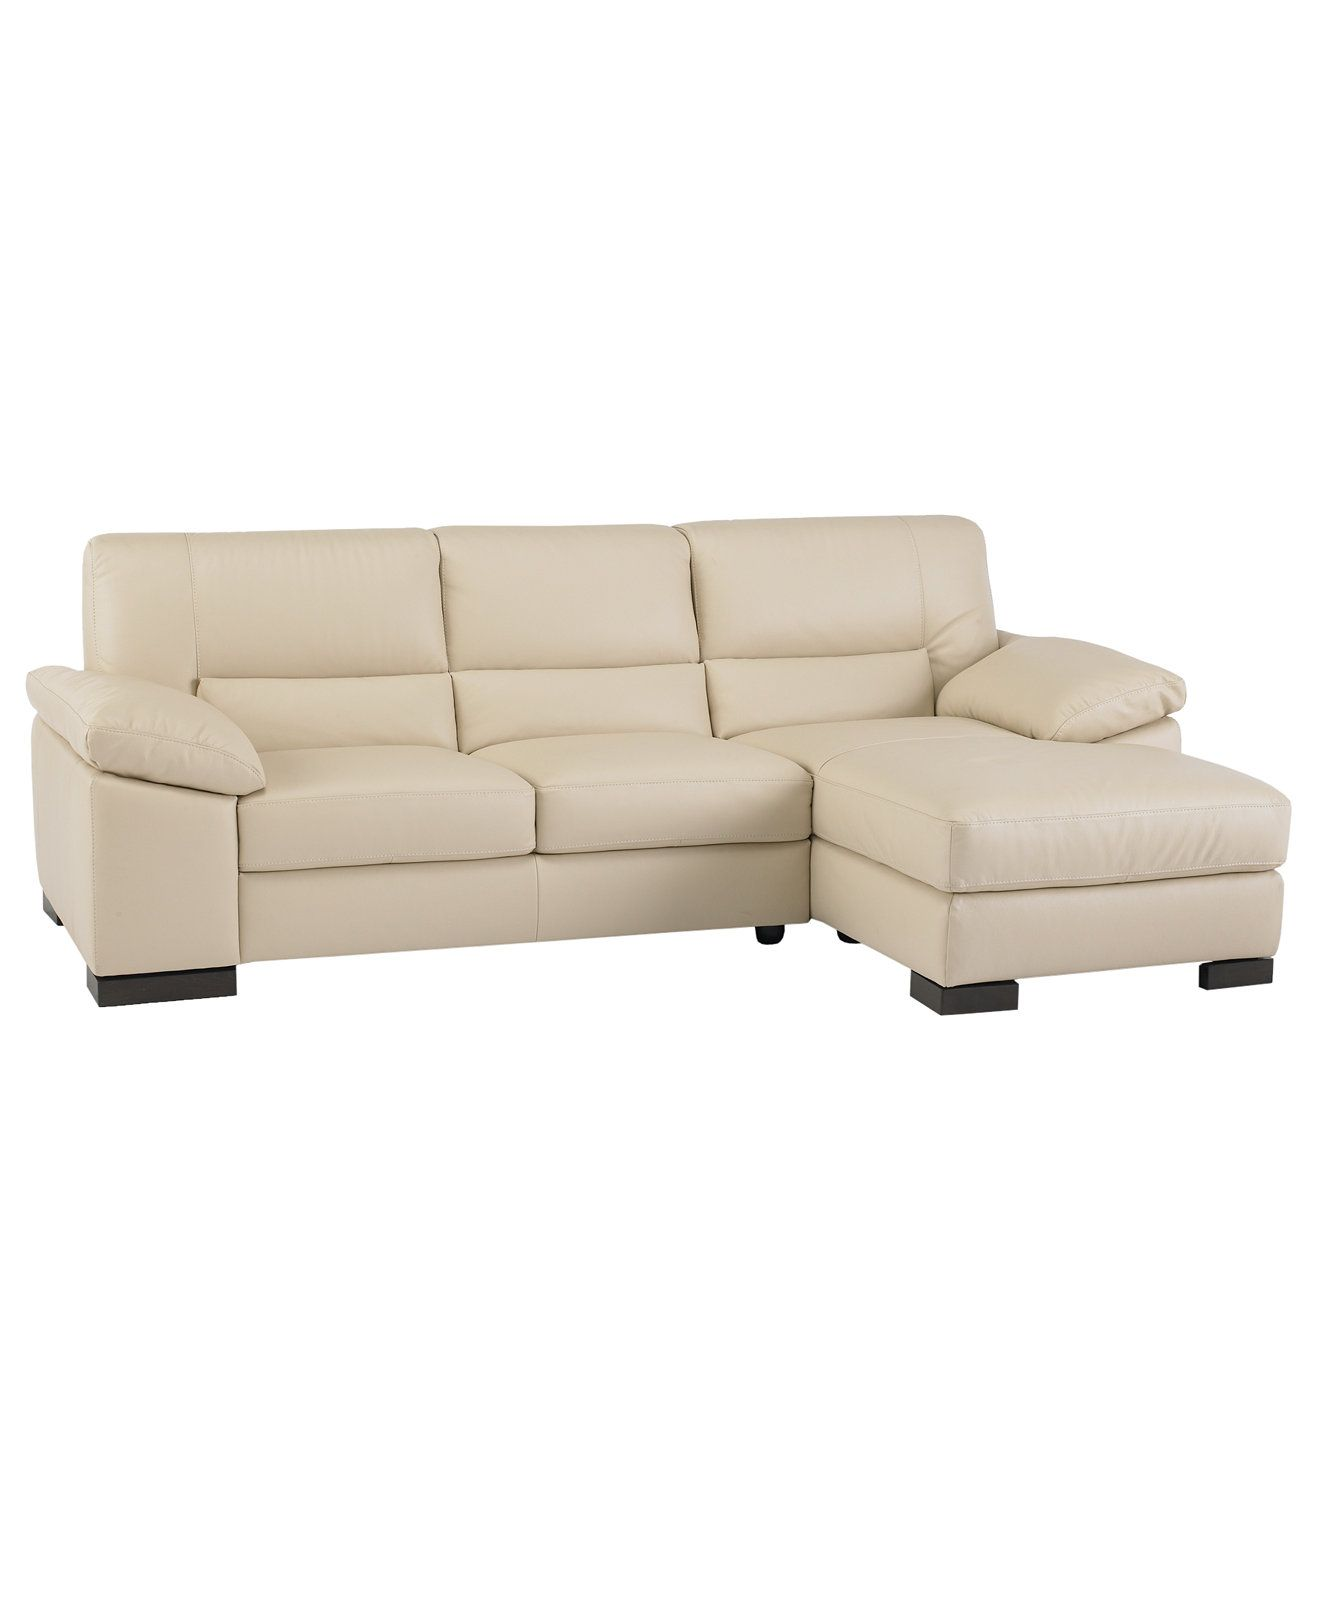 Spencer Leather Sectional Sofa (One Arm Loveseat U0026 One Arm Chaise)   Couches  U0026 Sofas   Furniture   Macyu0027s